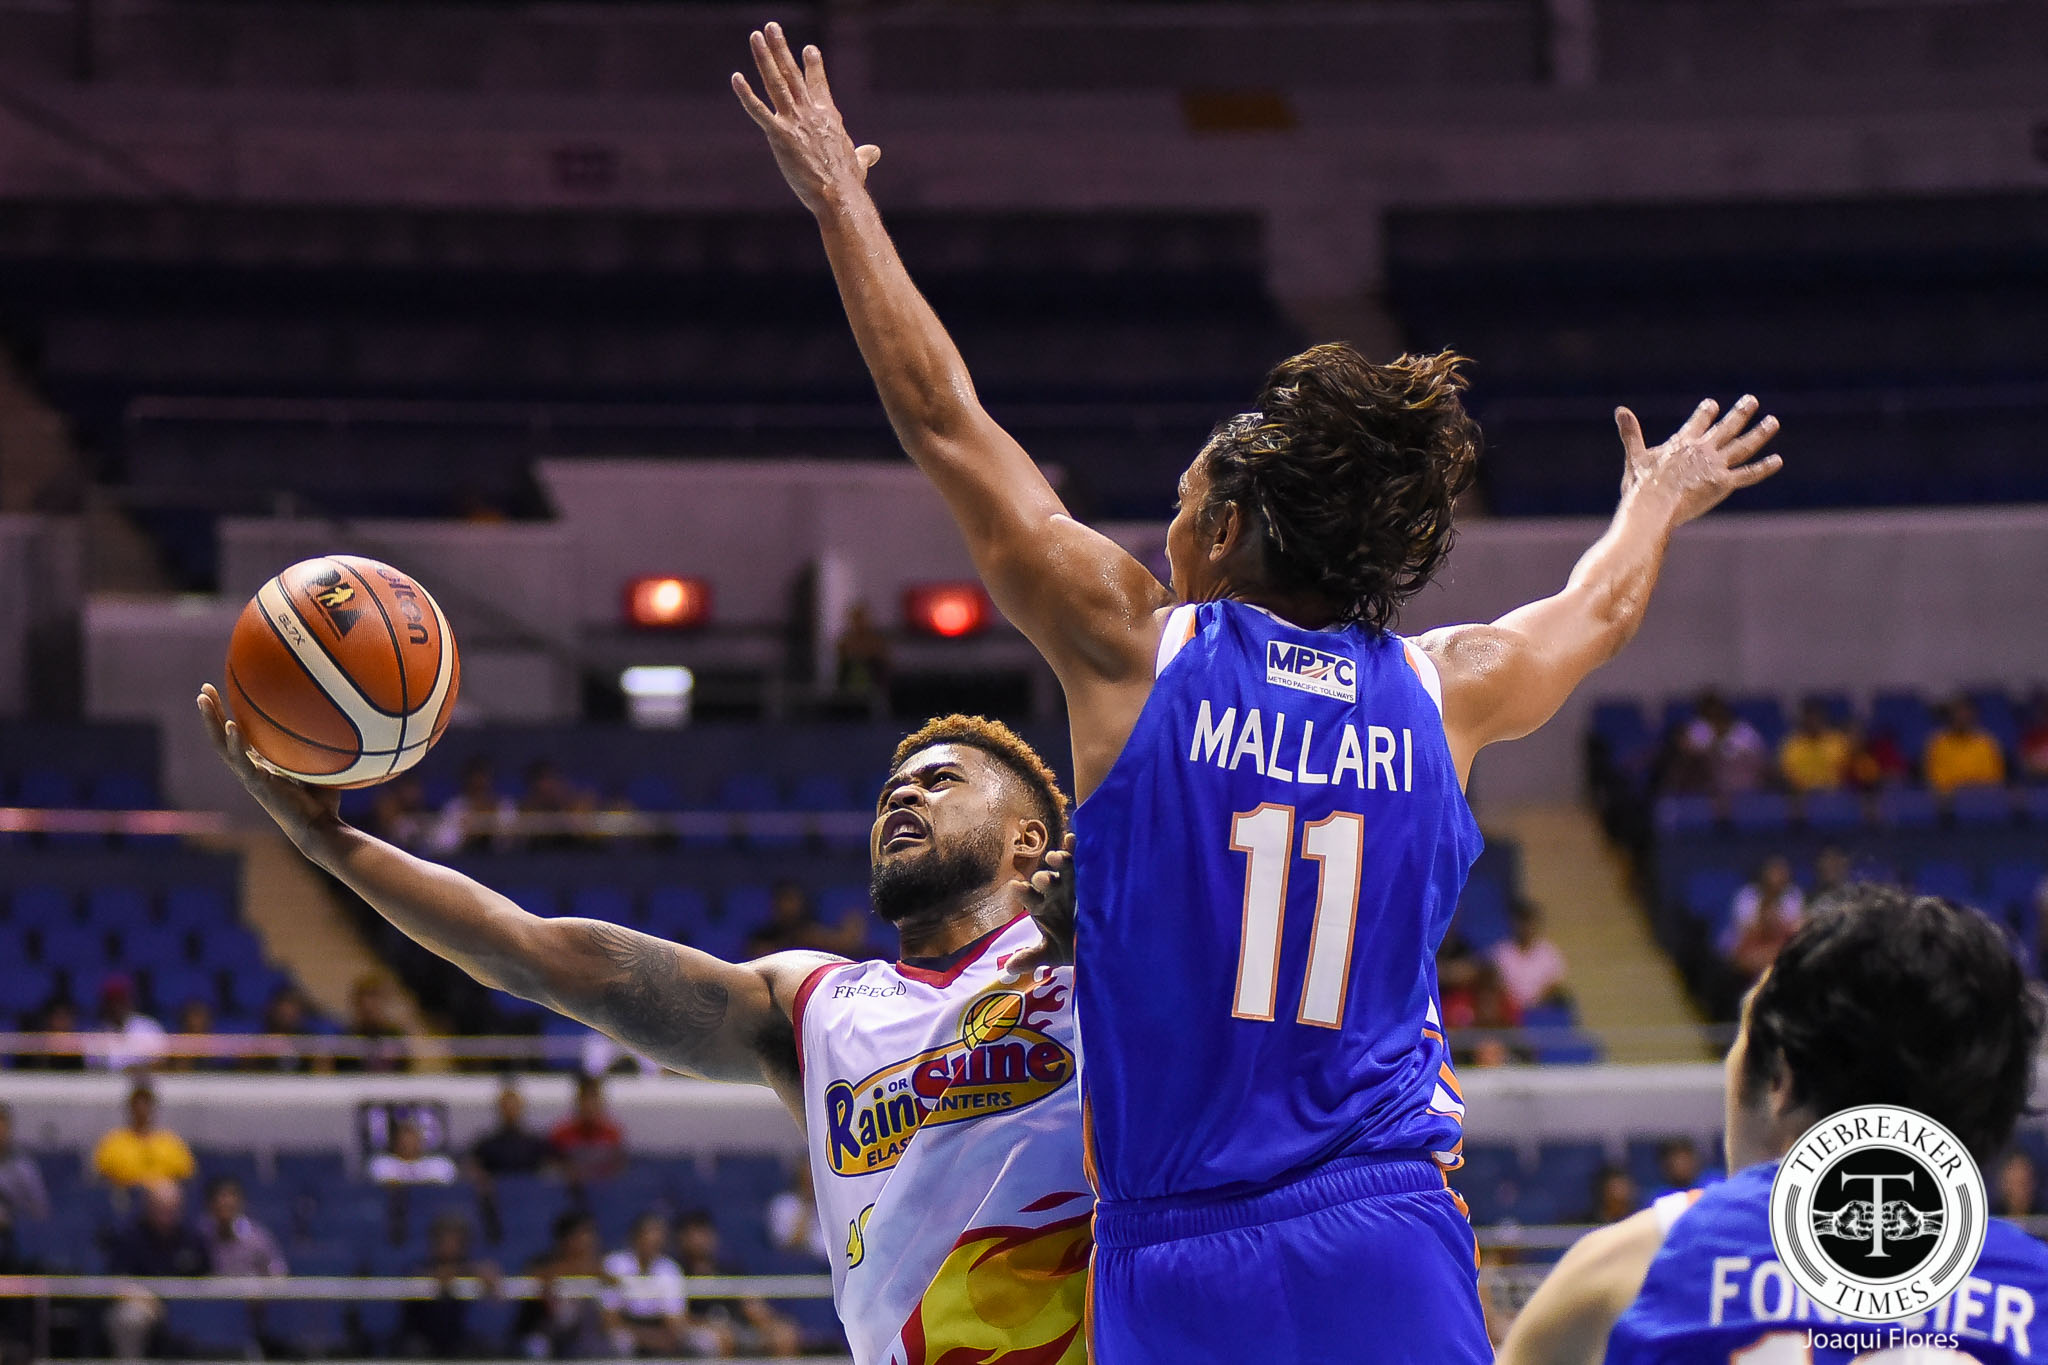 Tiebreaker Times Rain or Shine bounces back, sends NLEX to fourth consecutive loss Basketball News PBA  Yeng Guiao Rain or Shine Elasto Painters PBA Season 43 NLEX Road Warriors Maverick Ahanmisi Kiefer Ravena JR Quinahan James Yap Gabe Norwood Chris Tiu Caloy Garcia Alex Mallari 2017-18 PBA Philippine Cup